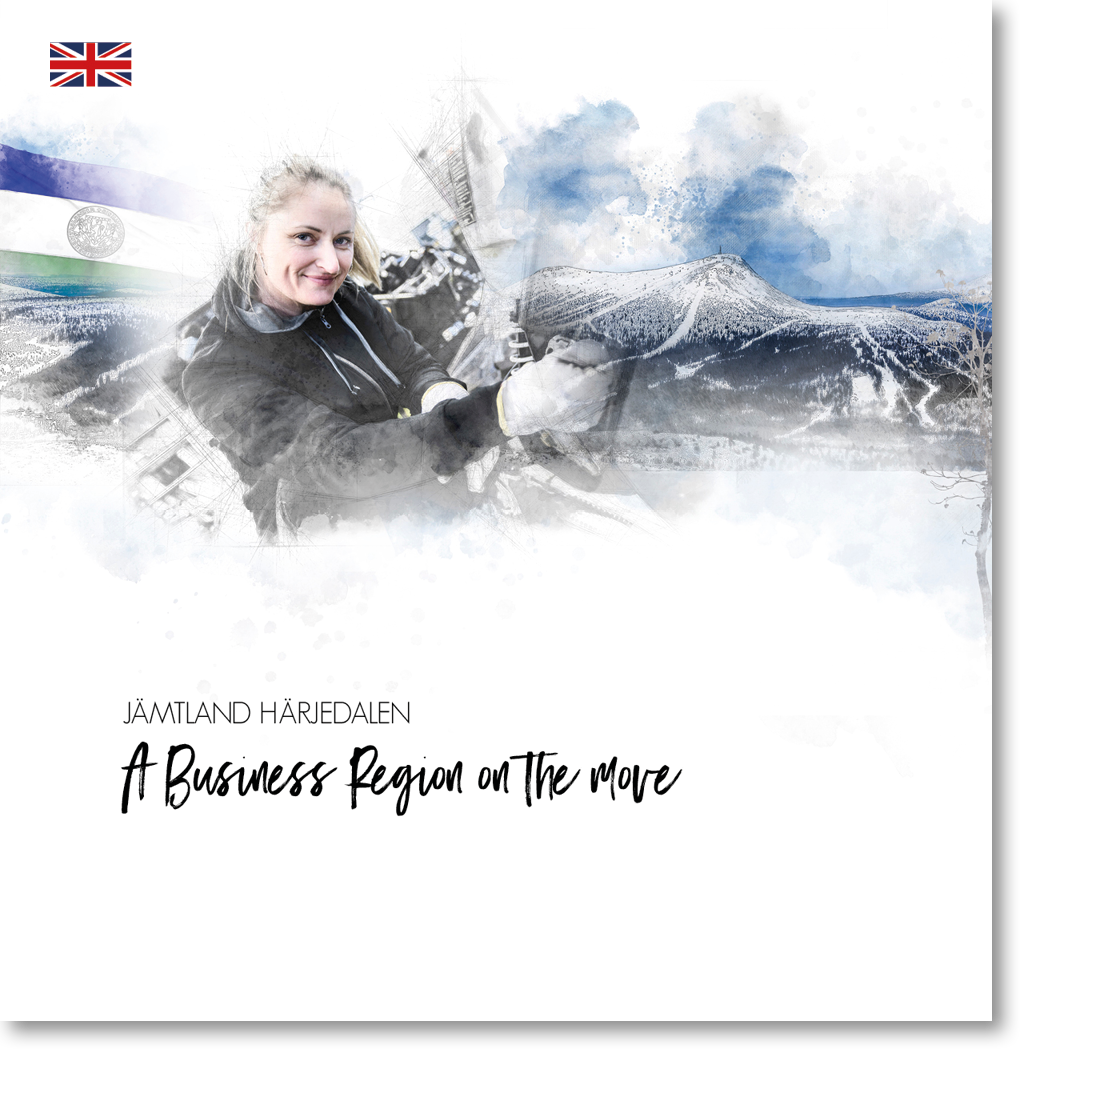 Folder A Business Region on the Move